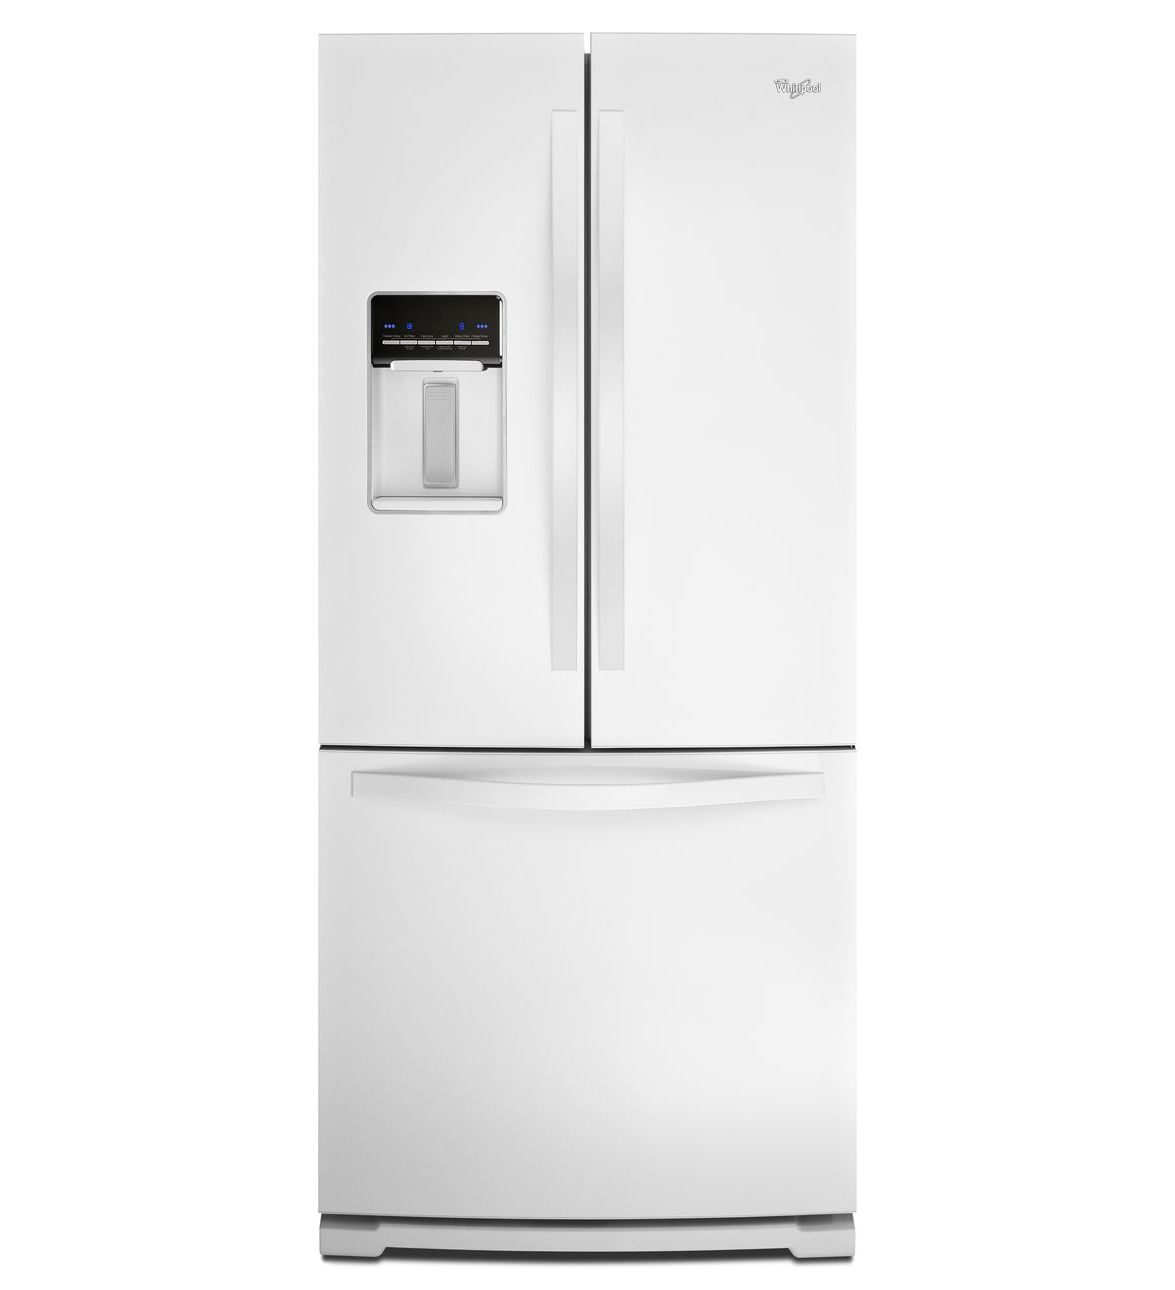 30 Inch Wide French Door Refrigerator With Exterior Water Dispenser More Colors Master Technicians Ltd